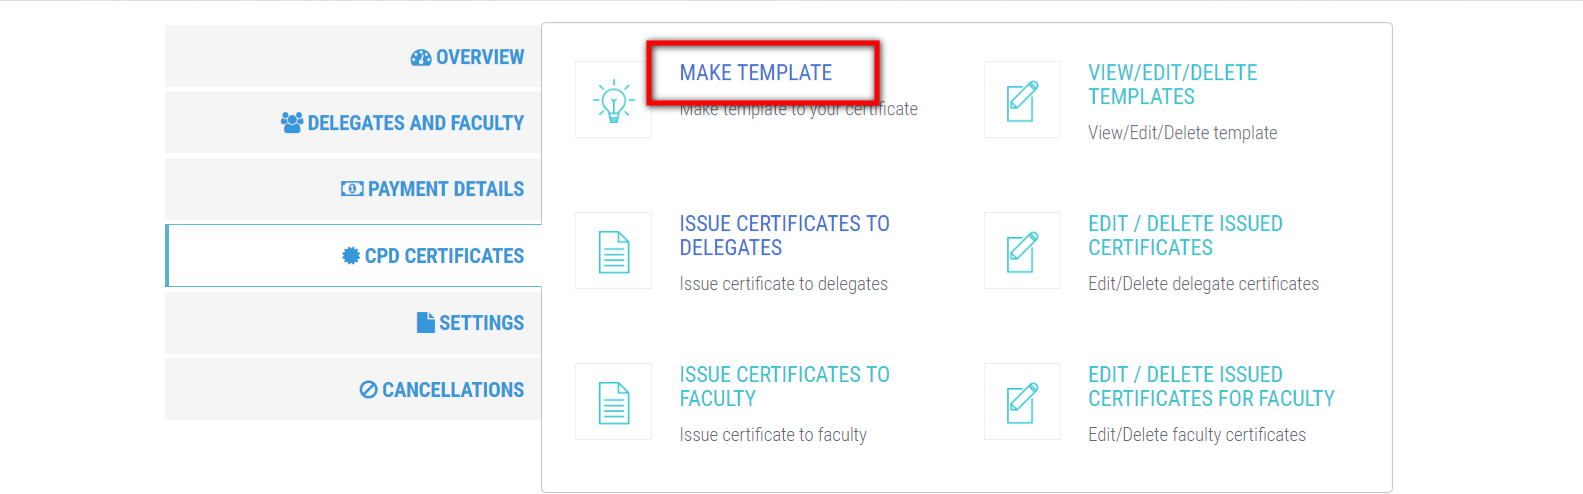 Make Certificate Template Bookcpd